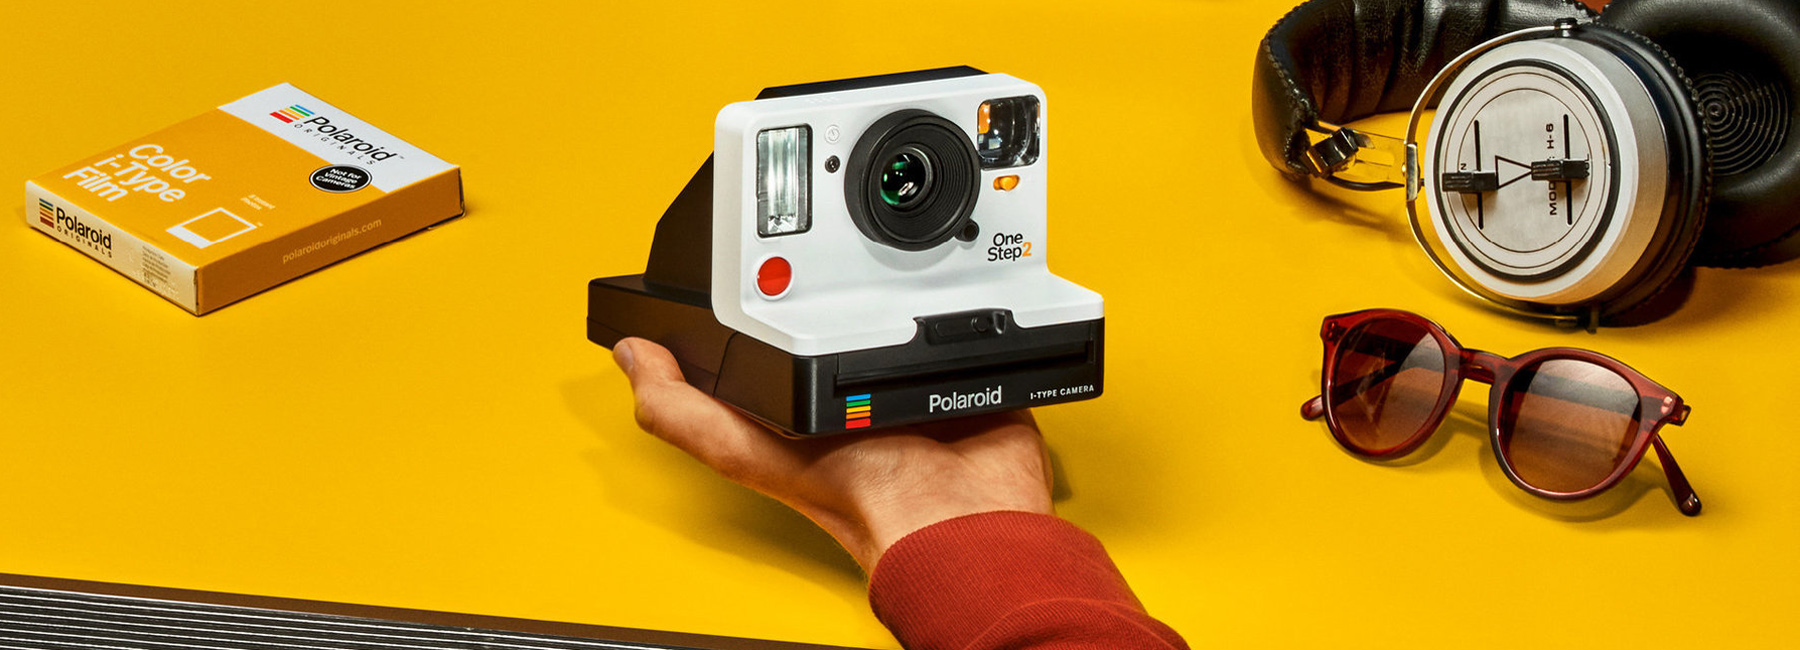 polaroid-onestep2-i-type-camera-designboom-header